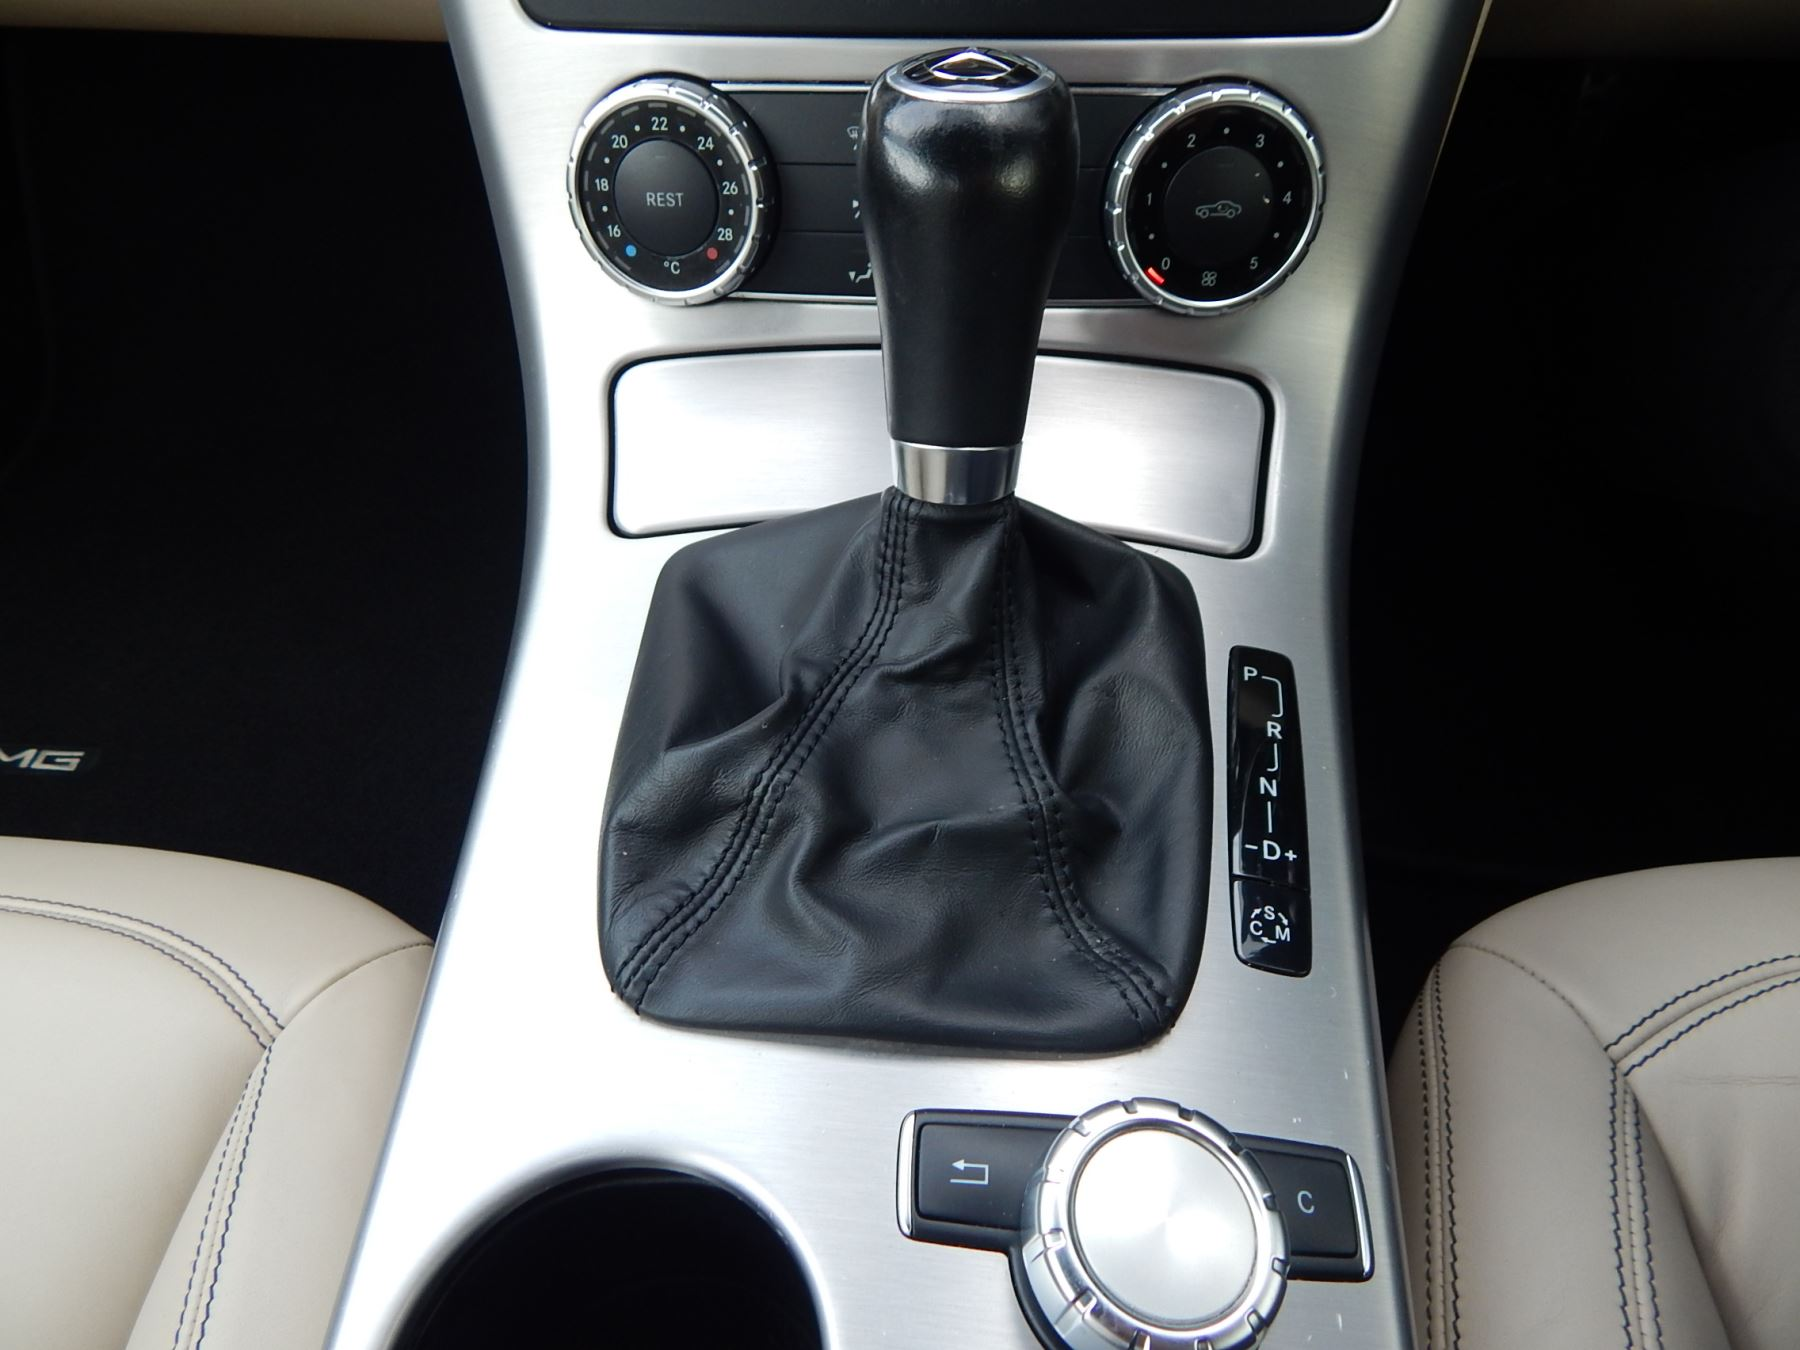 Mercedes Benz Slk 55 2dr Tip Automatic Roadster 2015 At Seat Post Suspension Zoom Ready Size 316 Image 14